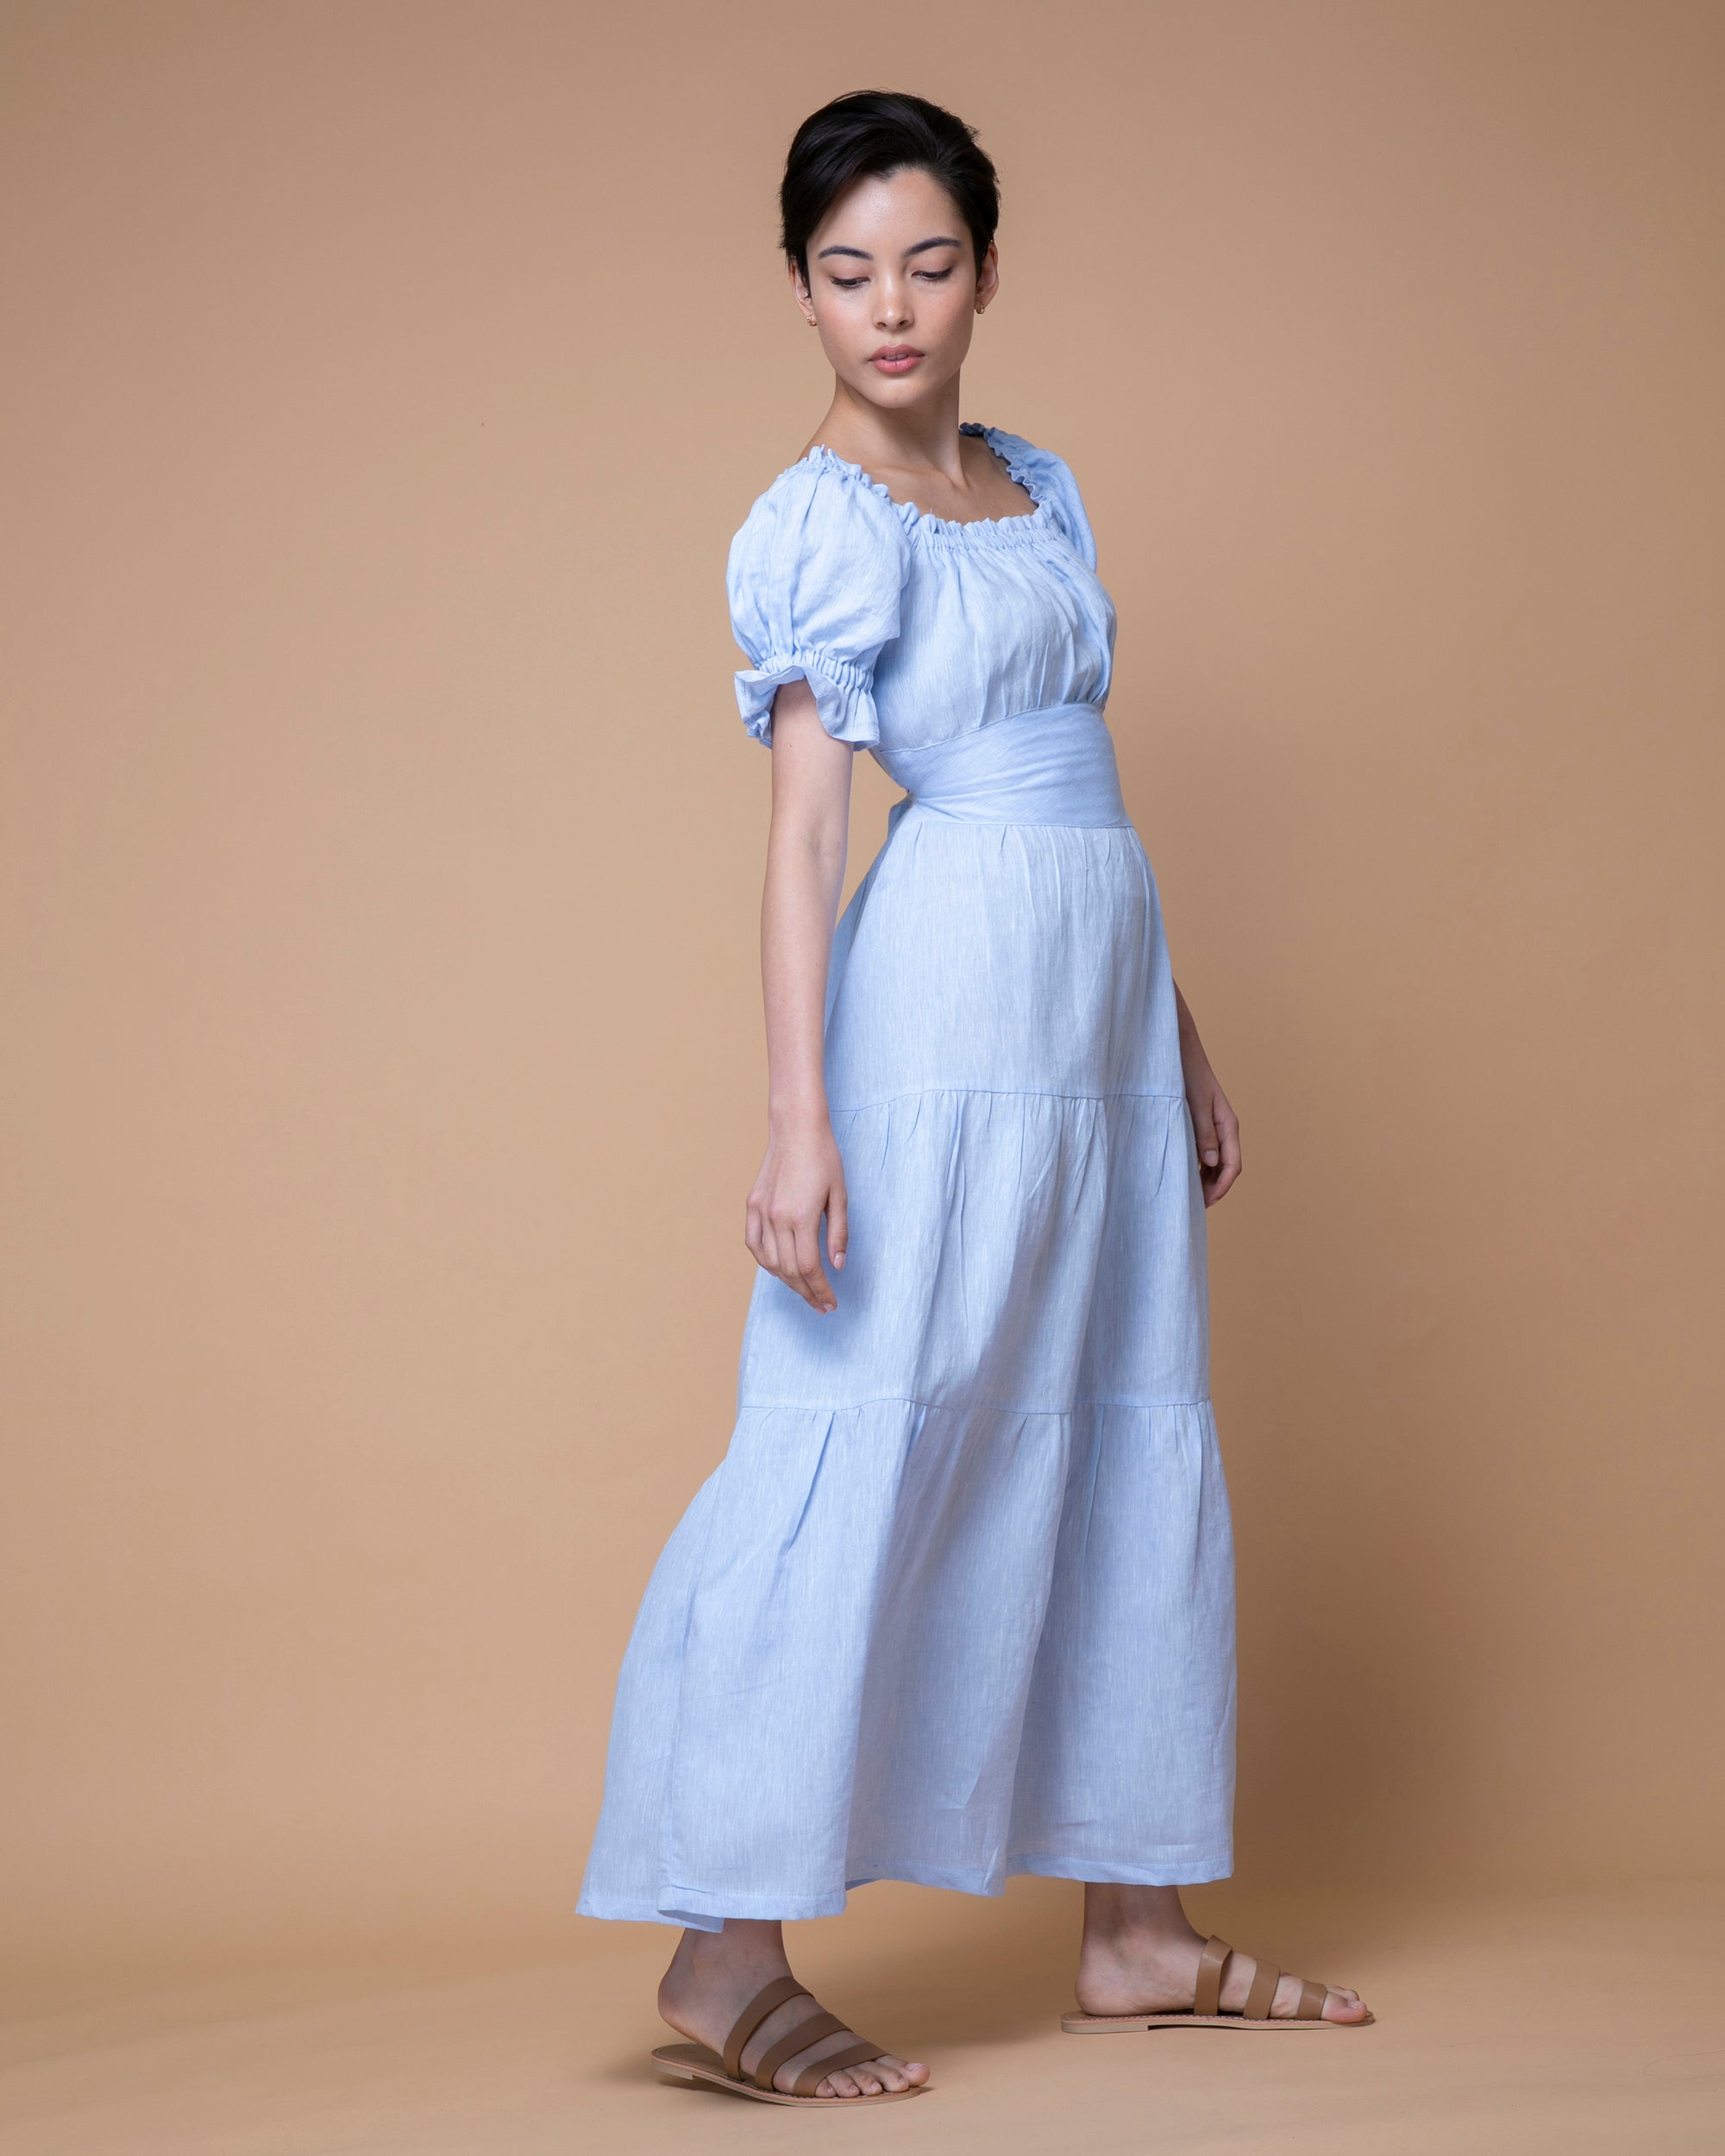 Light Blue Australian Handmade Premium Linen Elastic Neckline Square Neck Full Length Tiered Dress with Off Shoulder  Sleeves & Detailed Waist Boutique Designer Summer Casual Cocktail